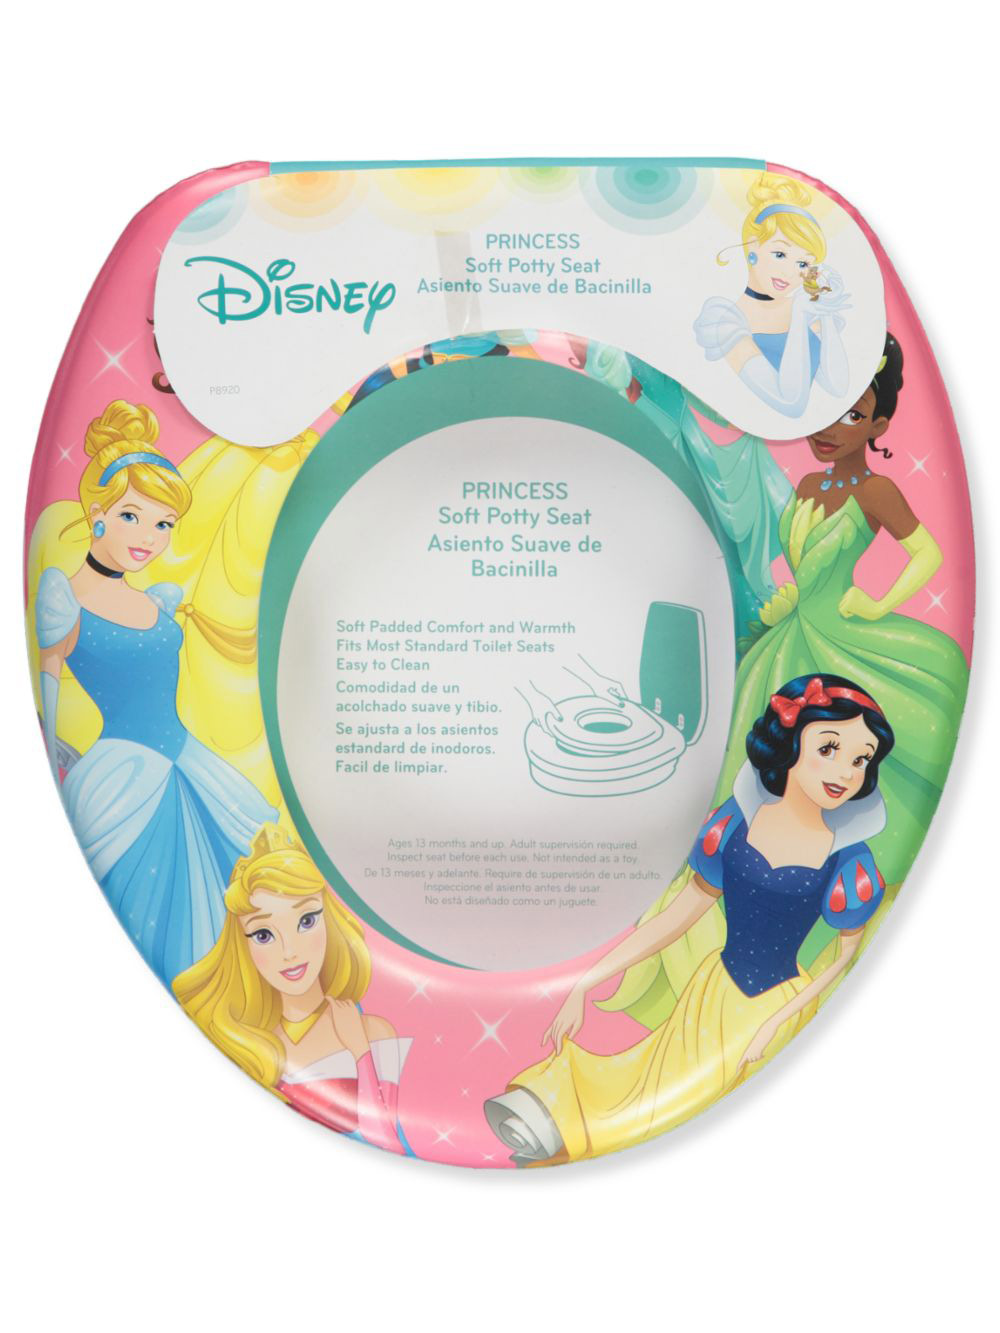 Disney Princess Soft Potty Seat